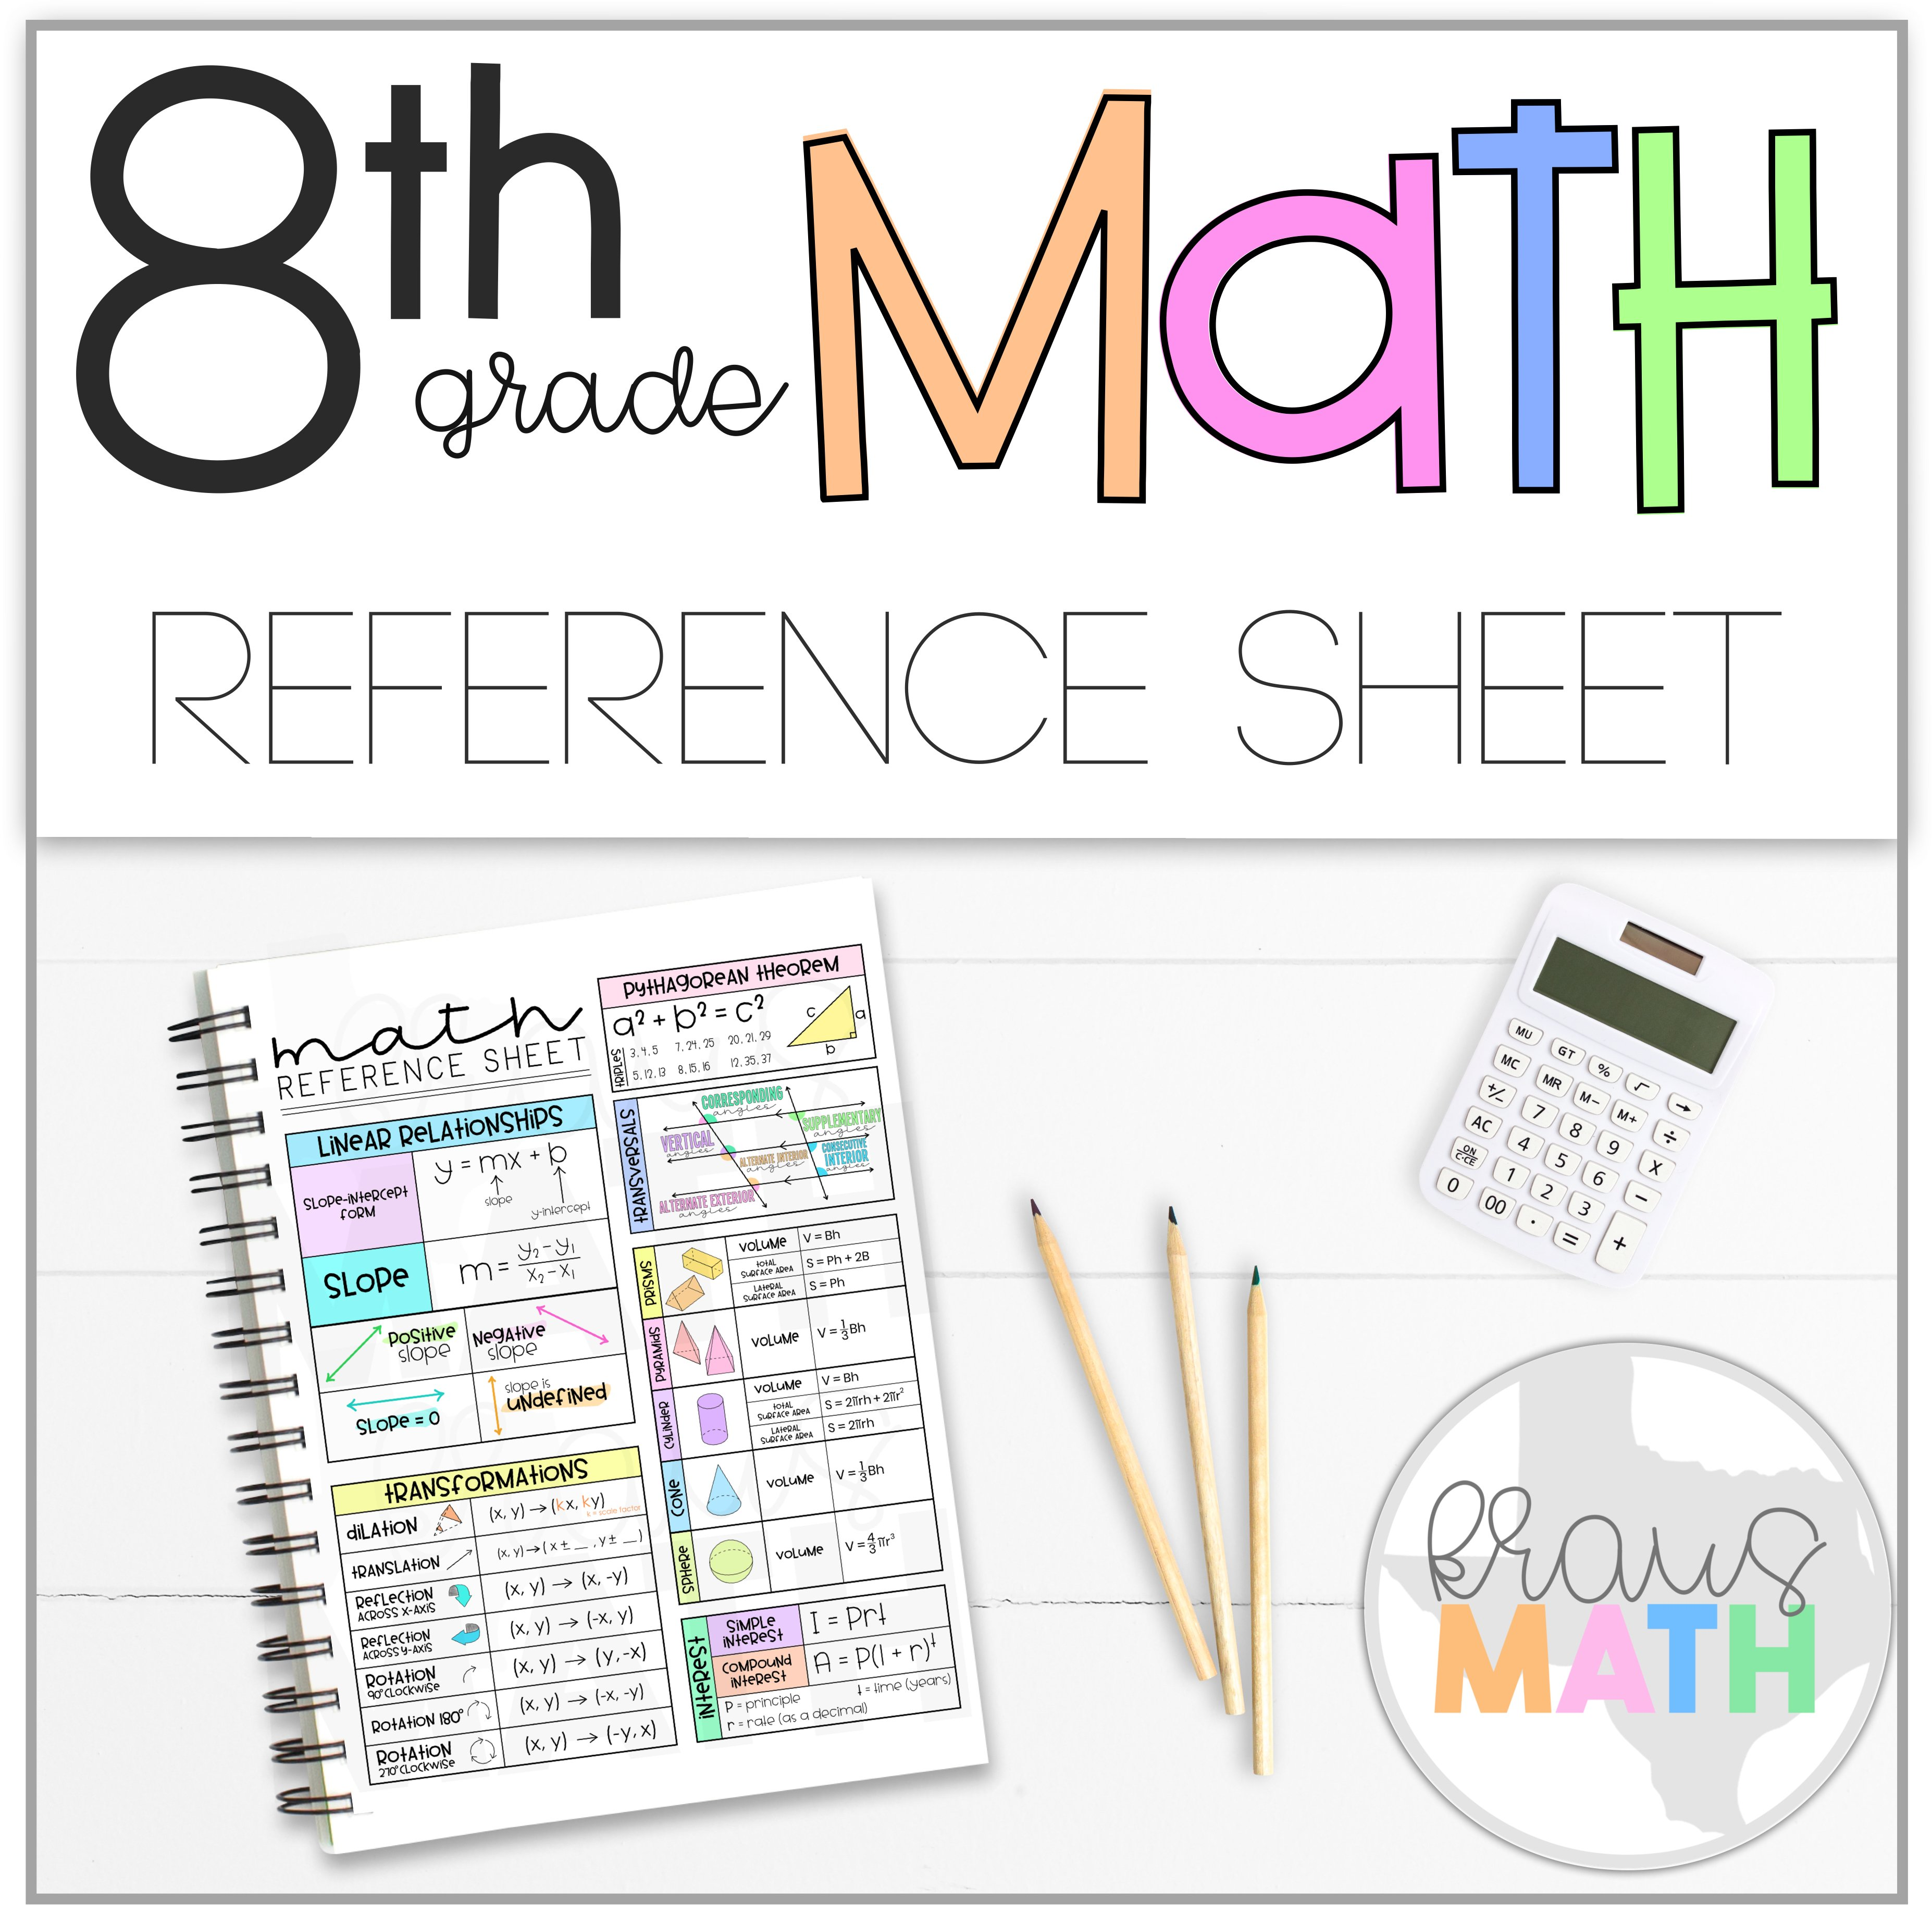 Notes & Worksheets Archives | Kraus Math